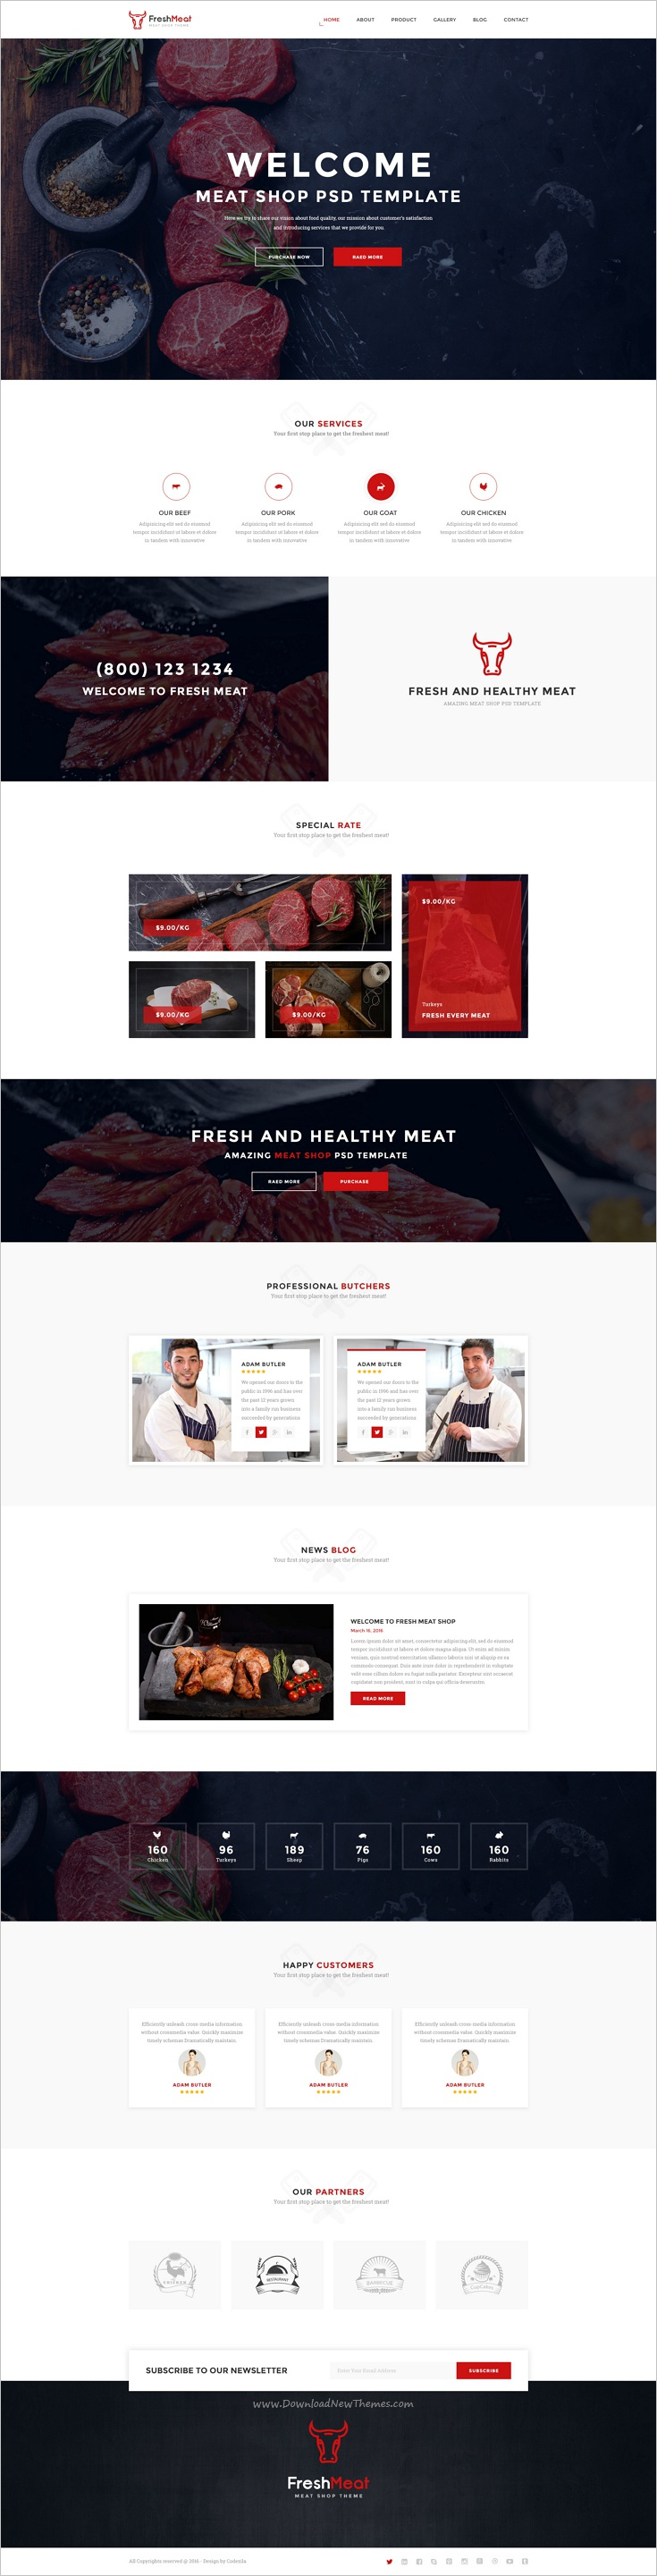 freshmeat is a wonderful 2in1 psd template for awesome meat shop